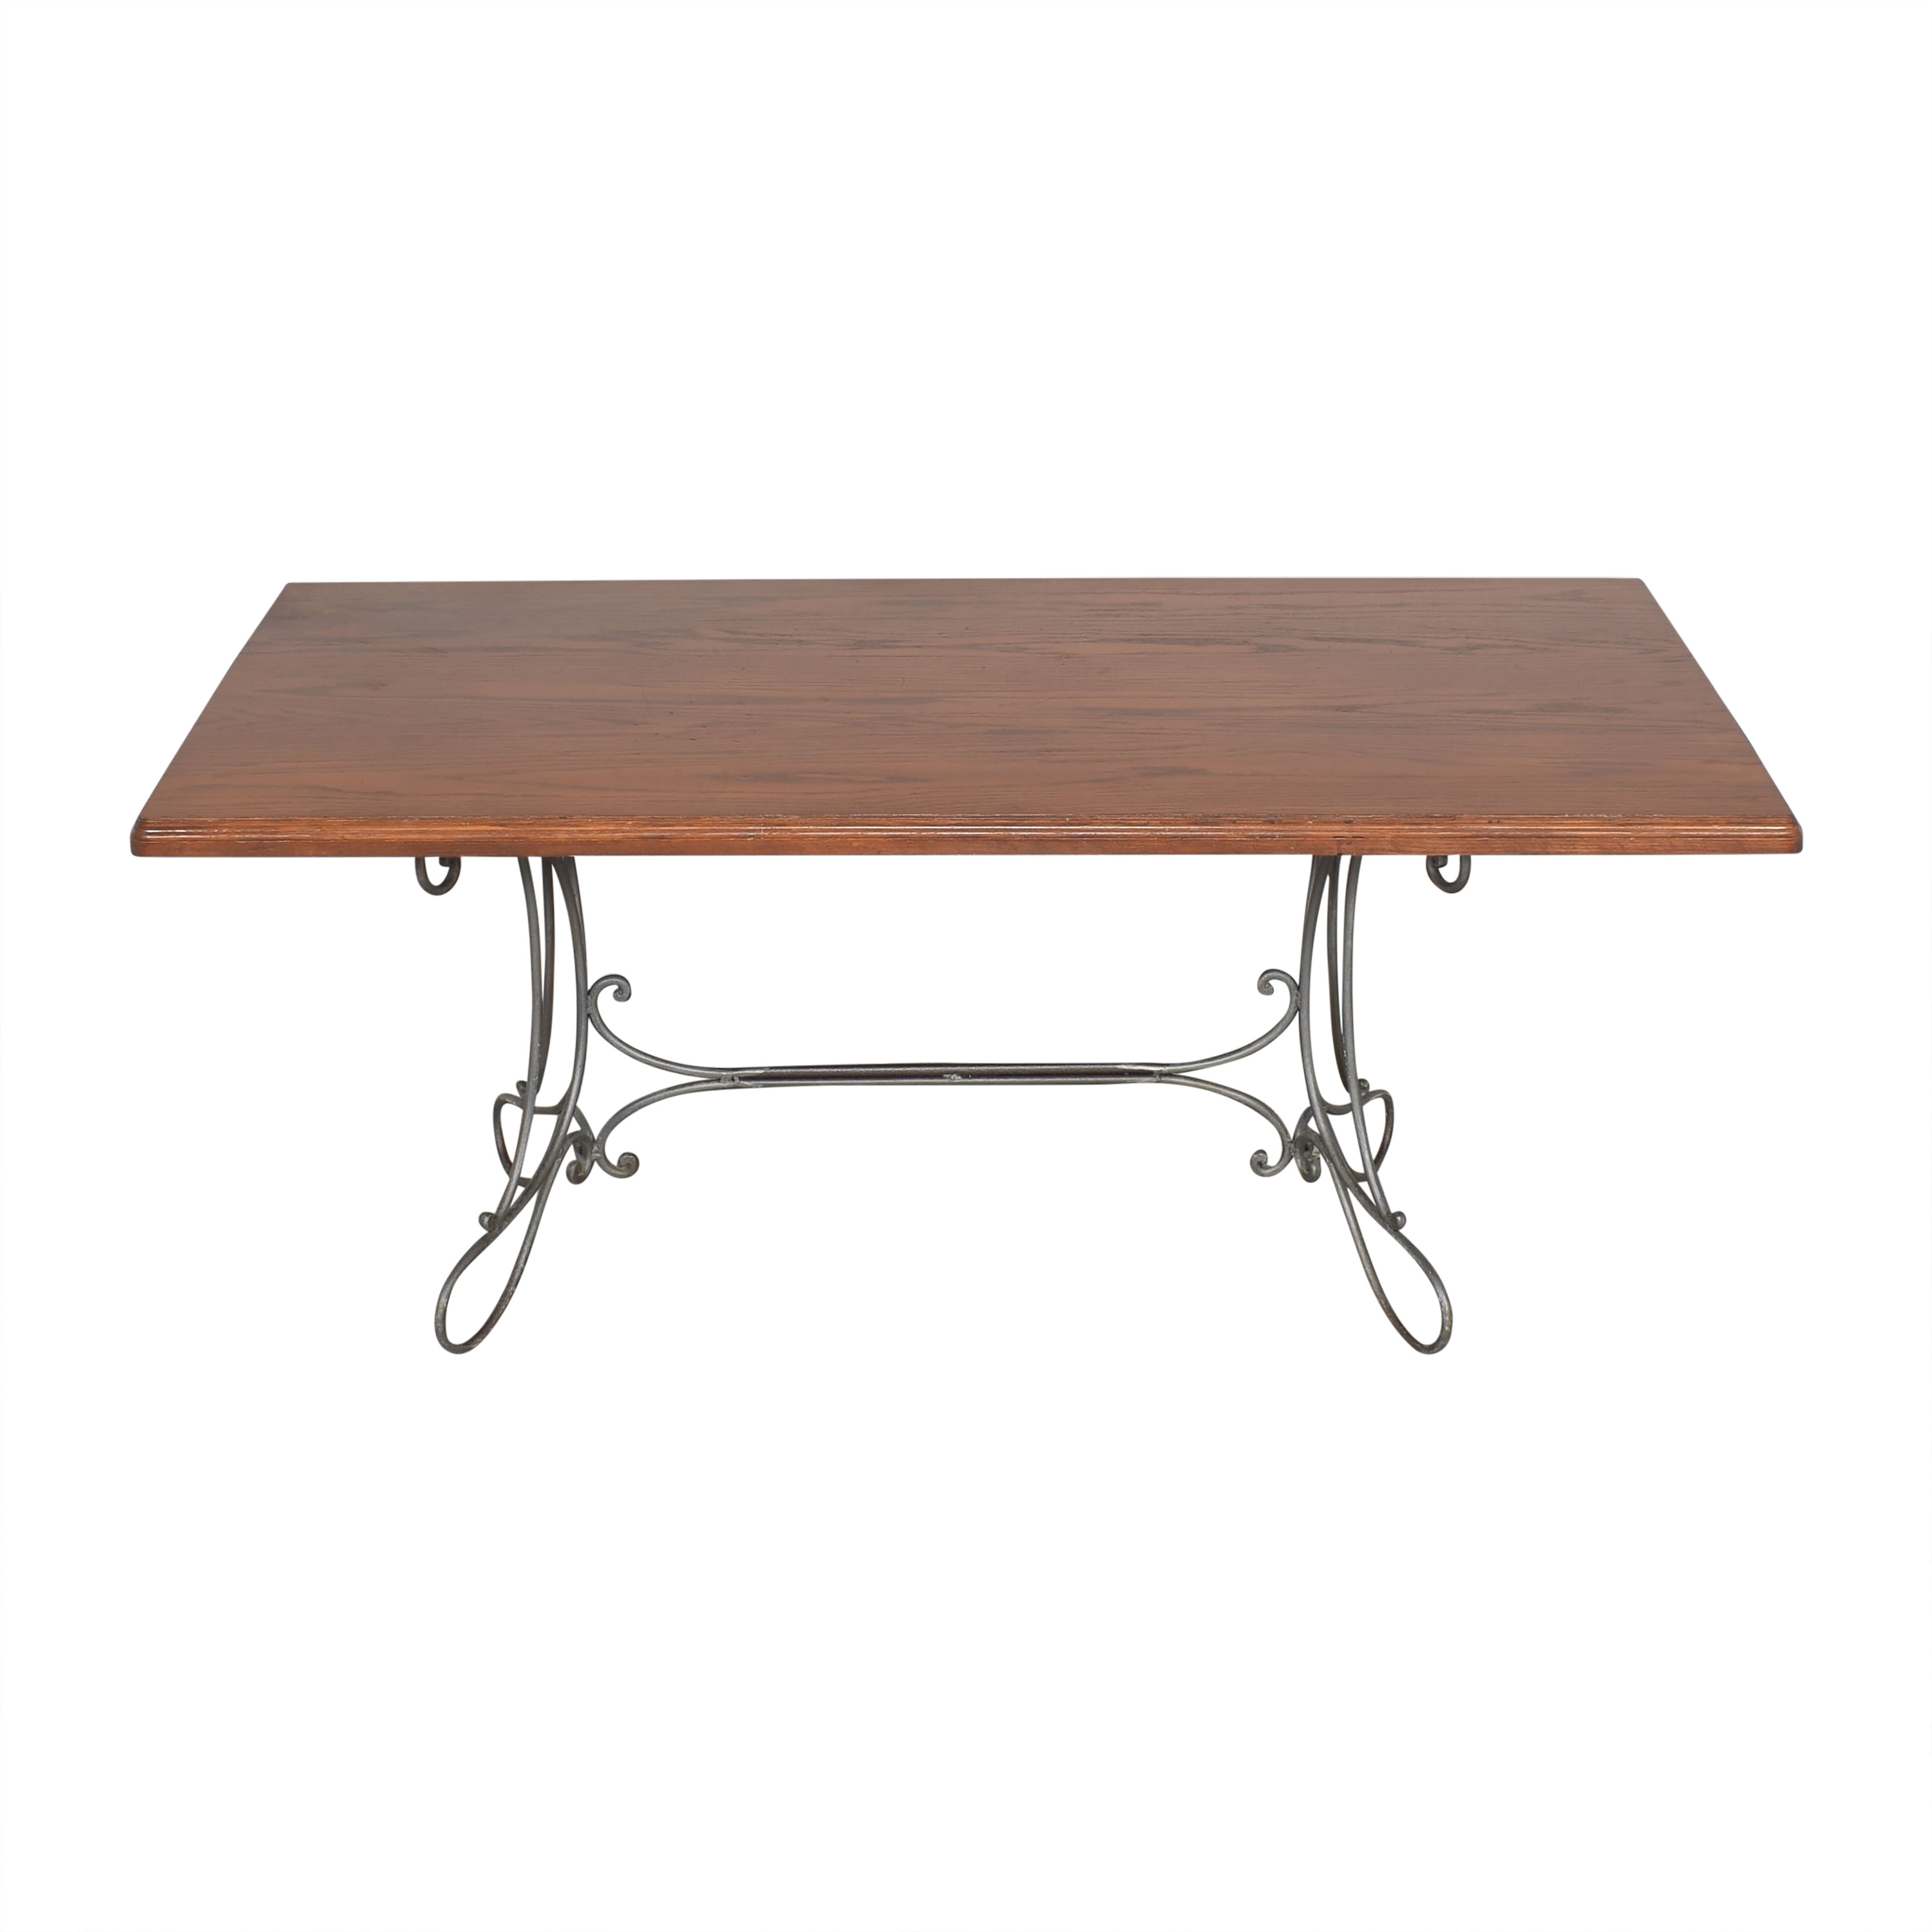 Custom Dining Table with Antique Openwork Base coupon